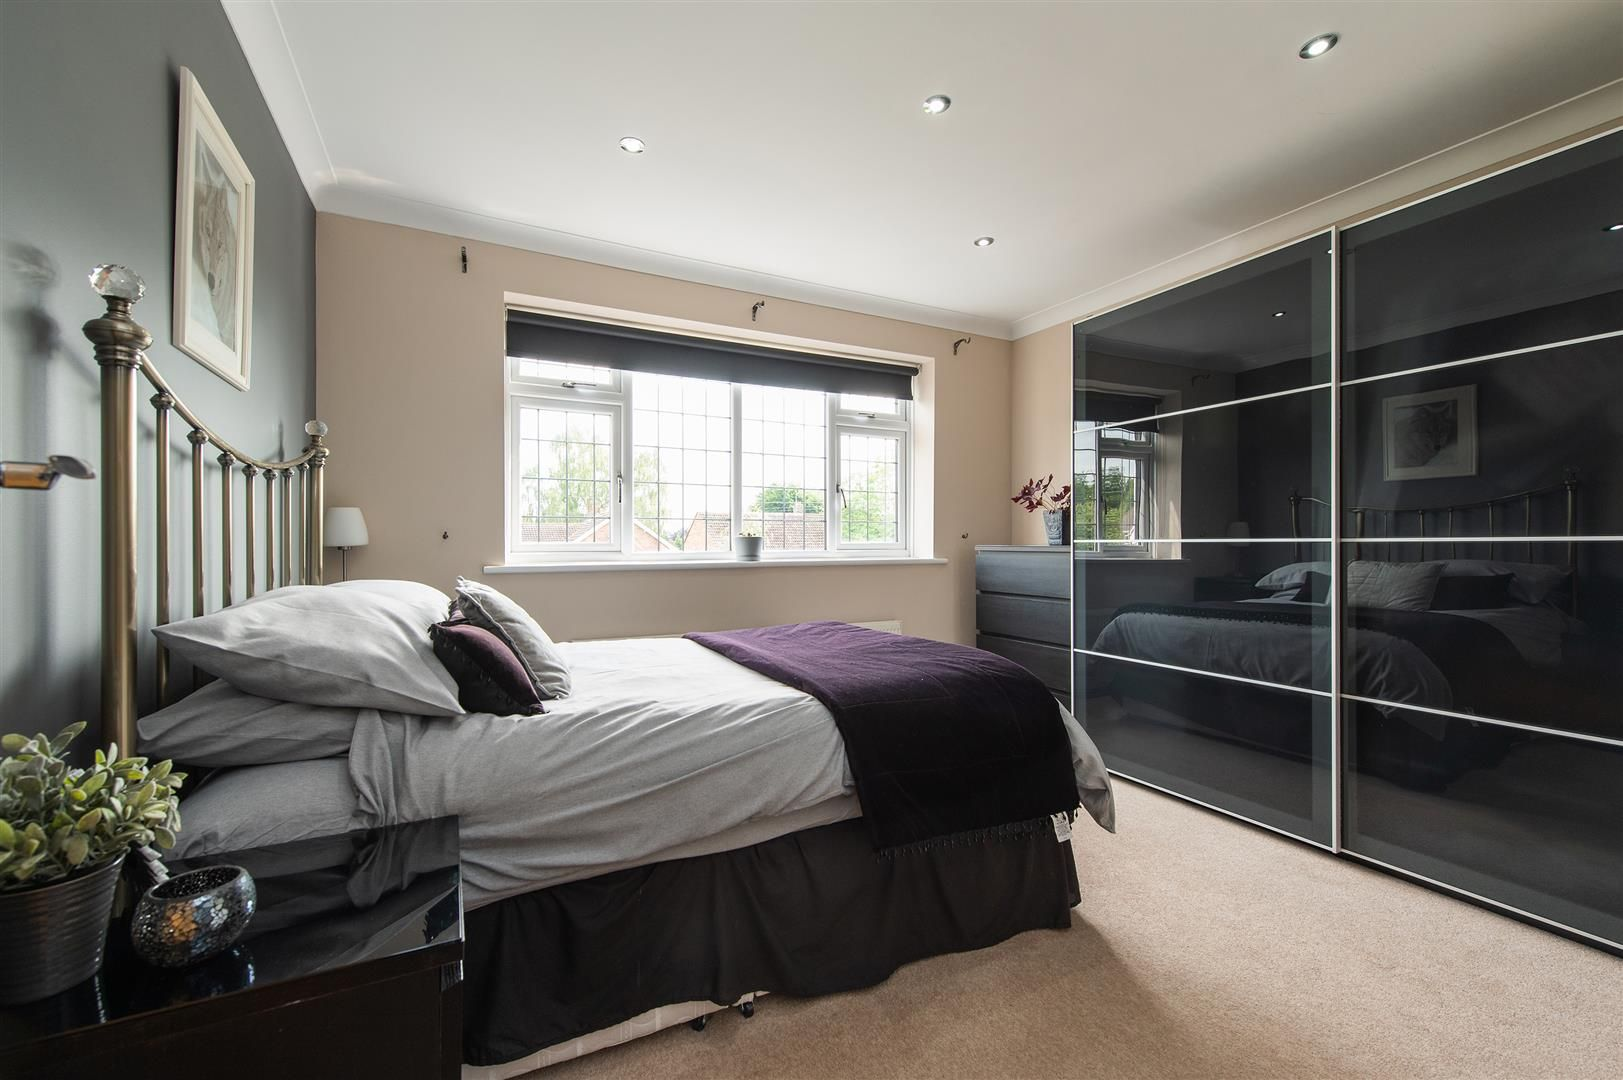 5 bed detached for sale in Hagley  - Property Image 23